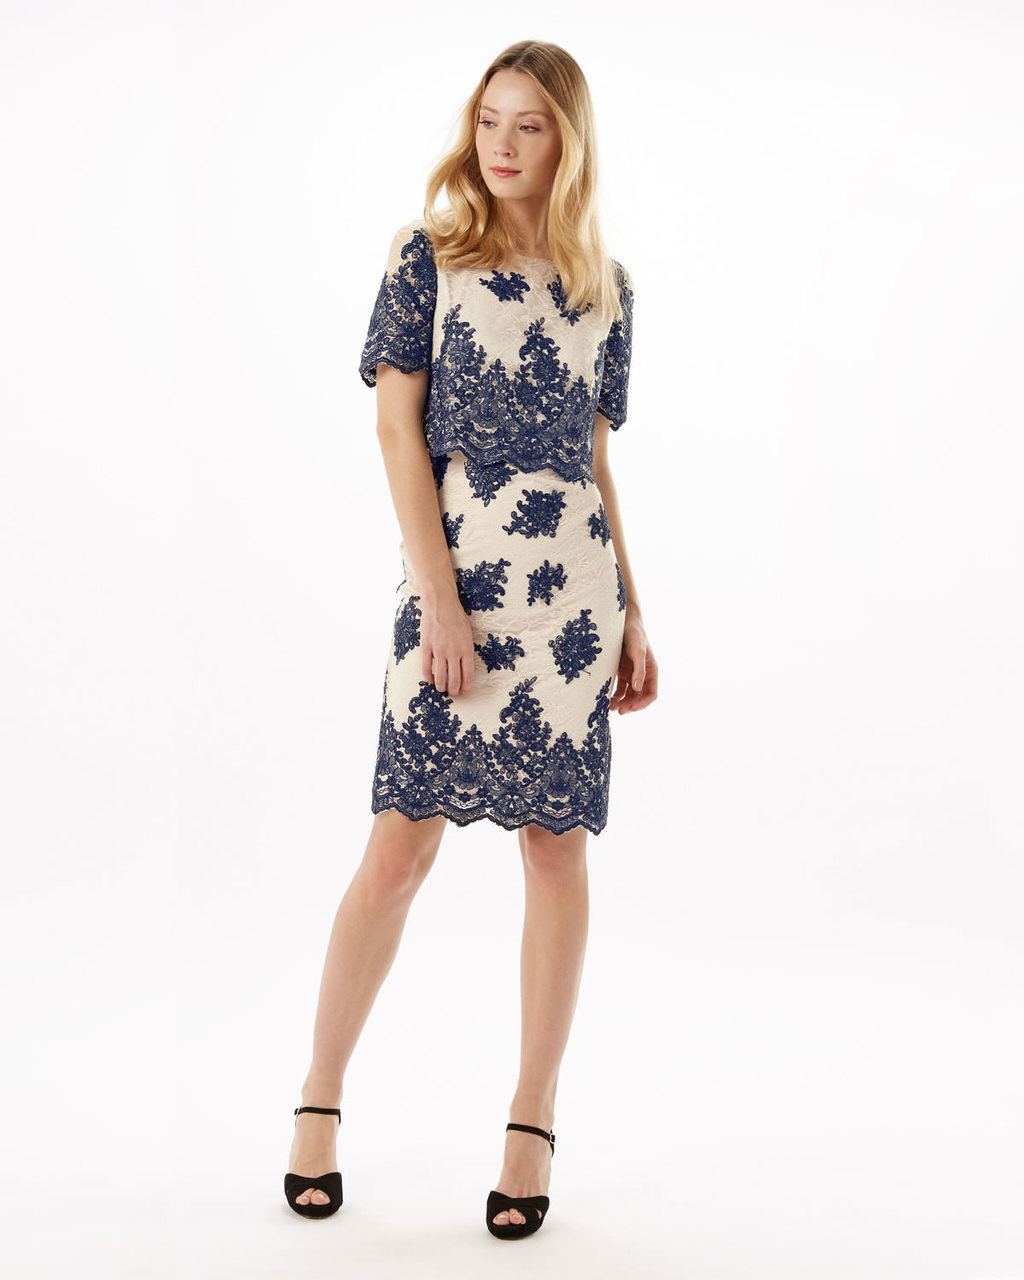 Ariel Lace Dress - style: shift; neckline: round neck; fit: tailored/fitted; hip detail: fitted at hip; predominant colour: navy; secondary colour: navy; occasions: evening, occasion; length: just above the knee; fibres: polyester/polyamide - 100%; sleeve length: short sleeve; sleeve style: standard; pattern type: fabric; pattern size: standard; pattern: florals; texture group: other - light to midweight; embellishment: lace; season: s/s 2016